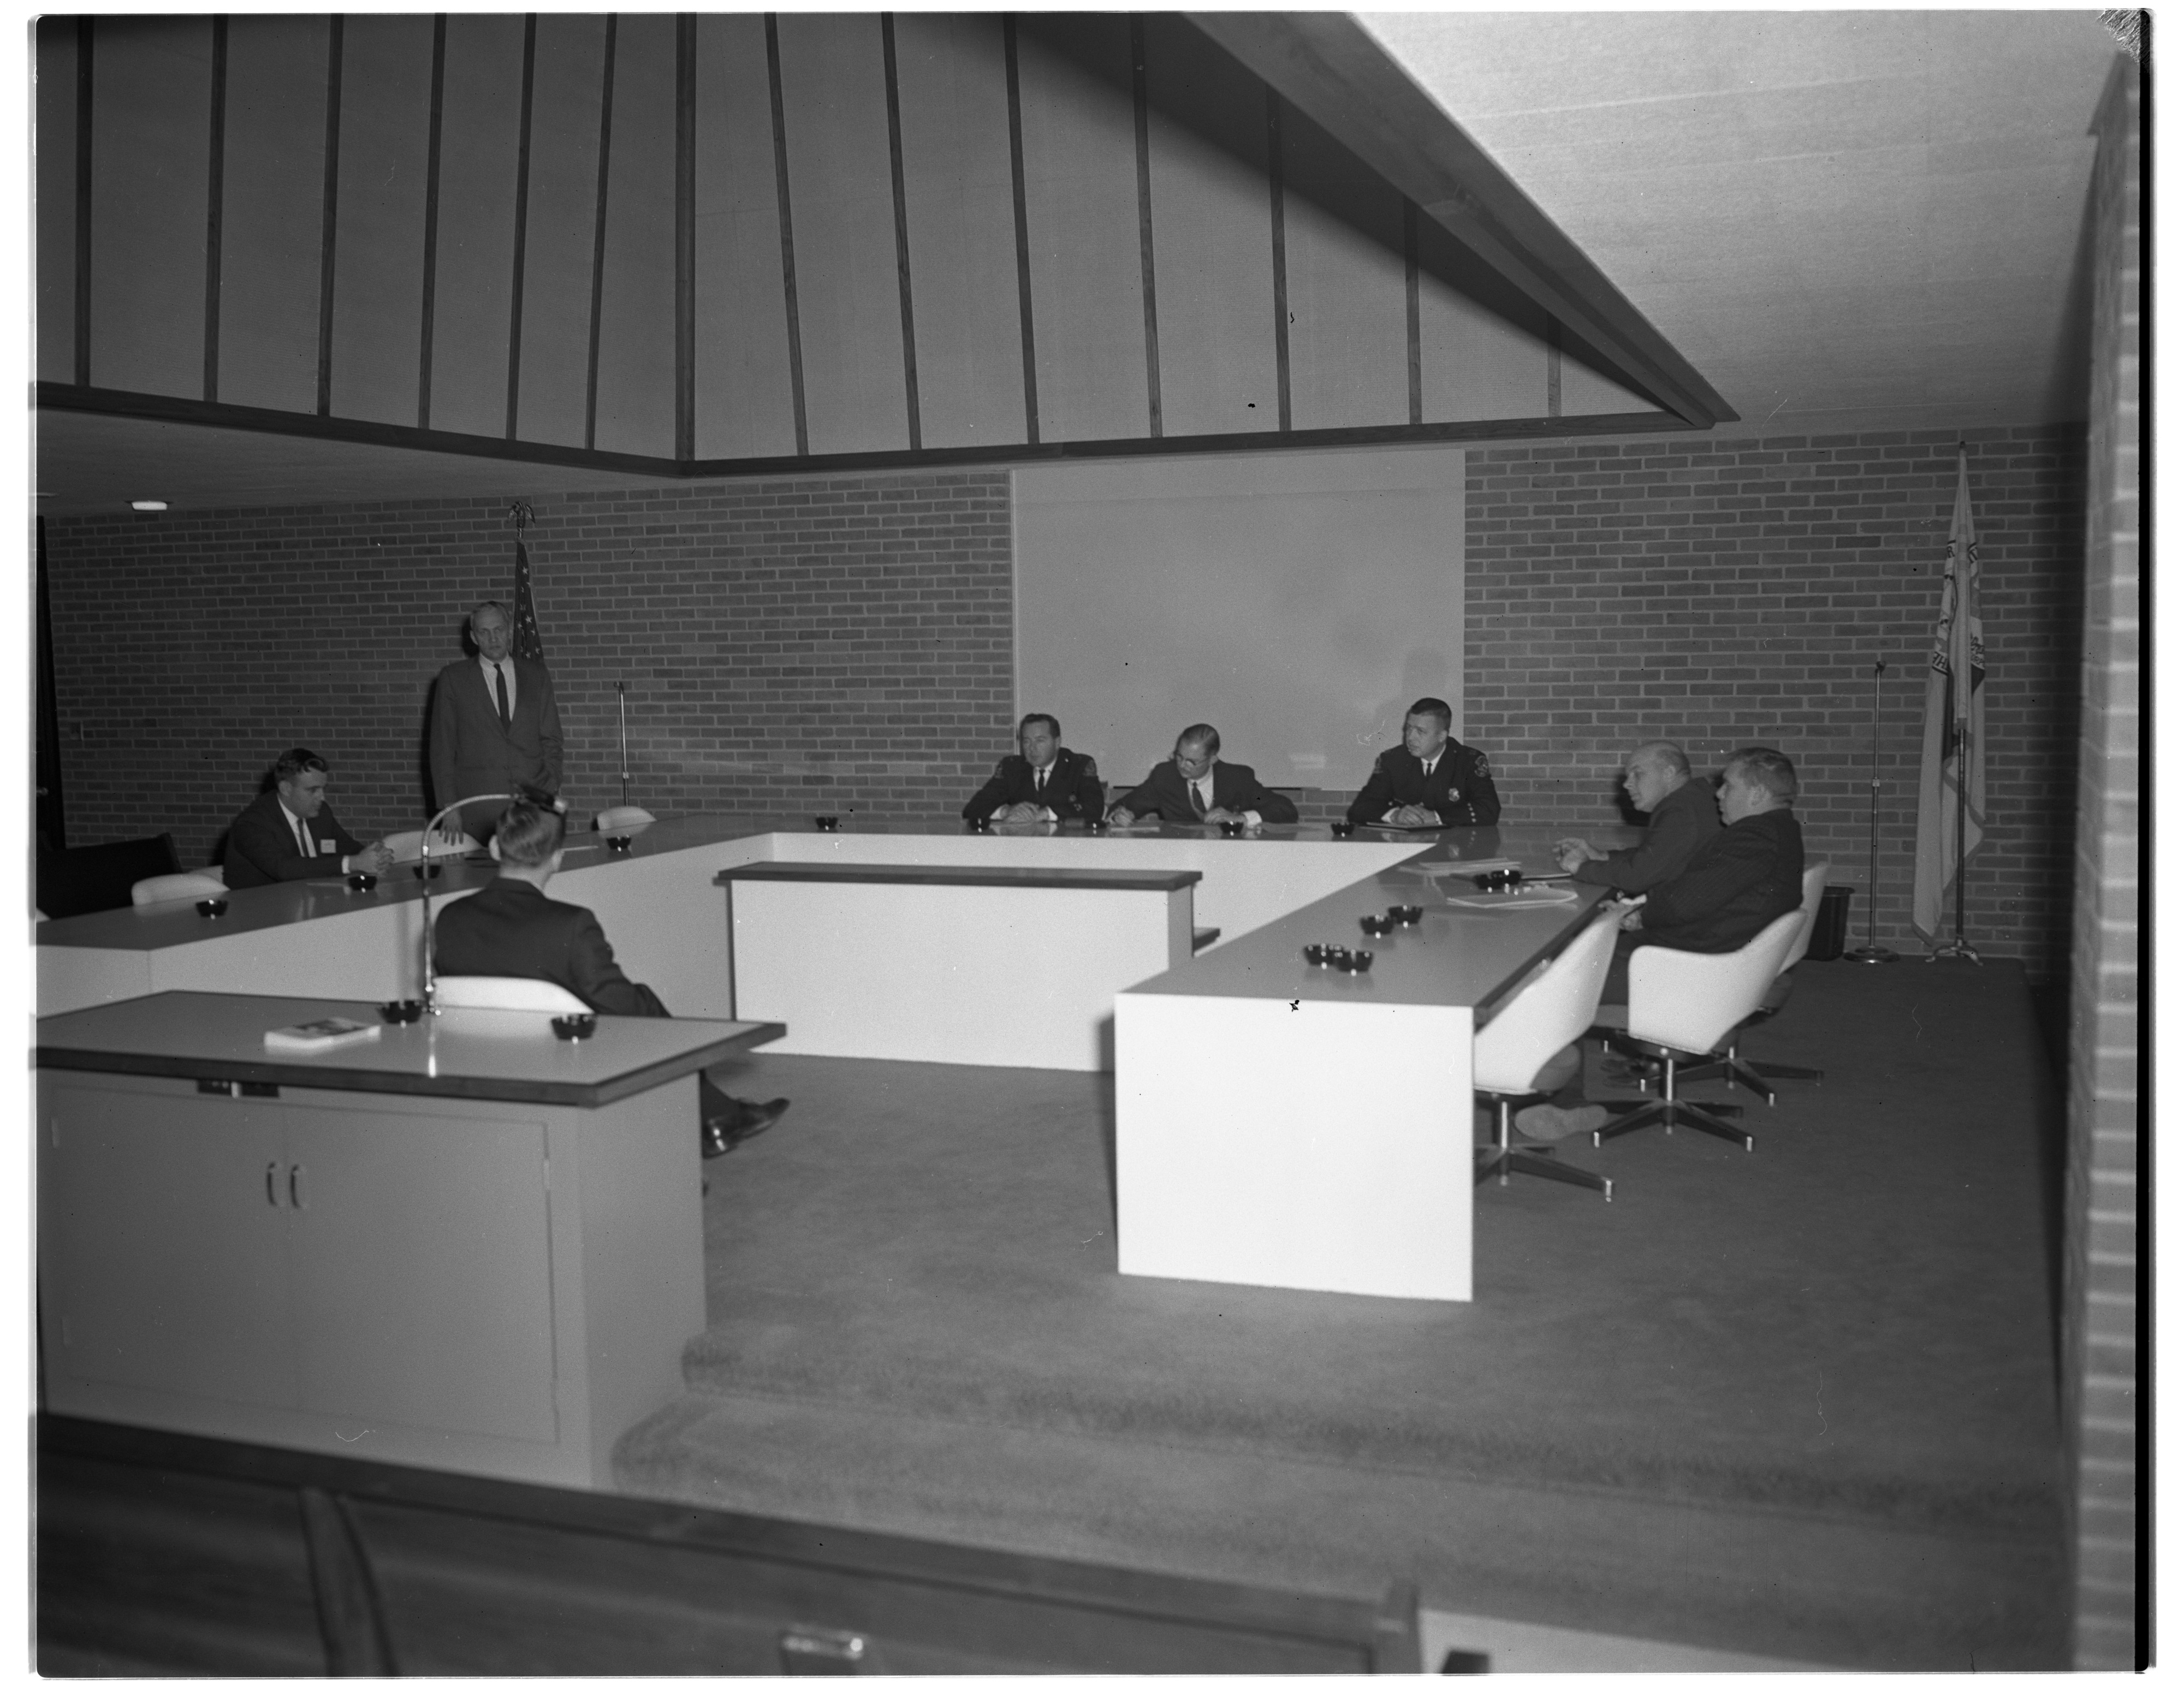 Ann Arbor Police Train Recruits In Mock Trial, December 1966 image